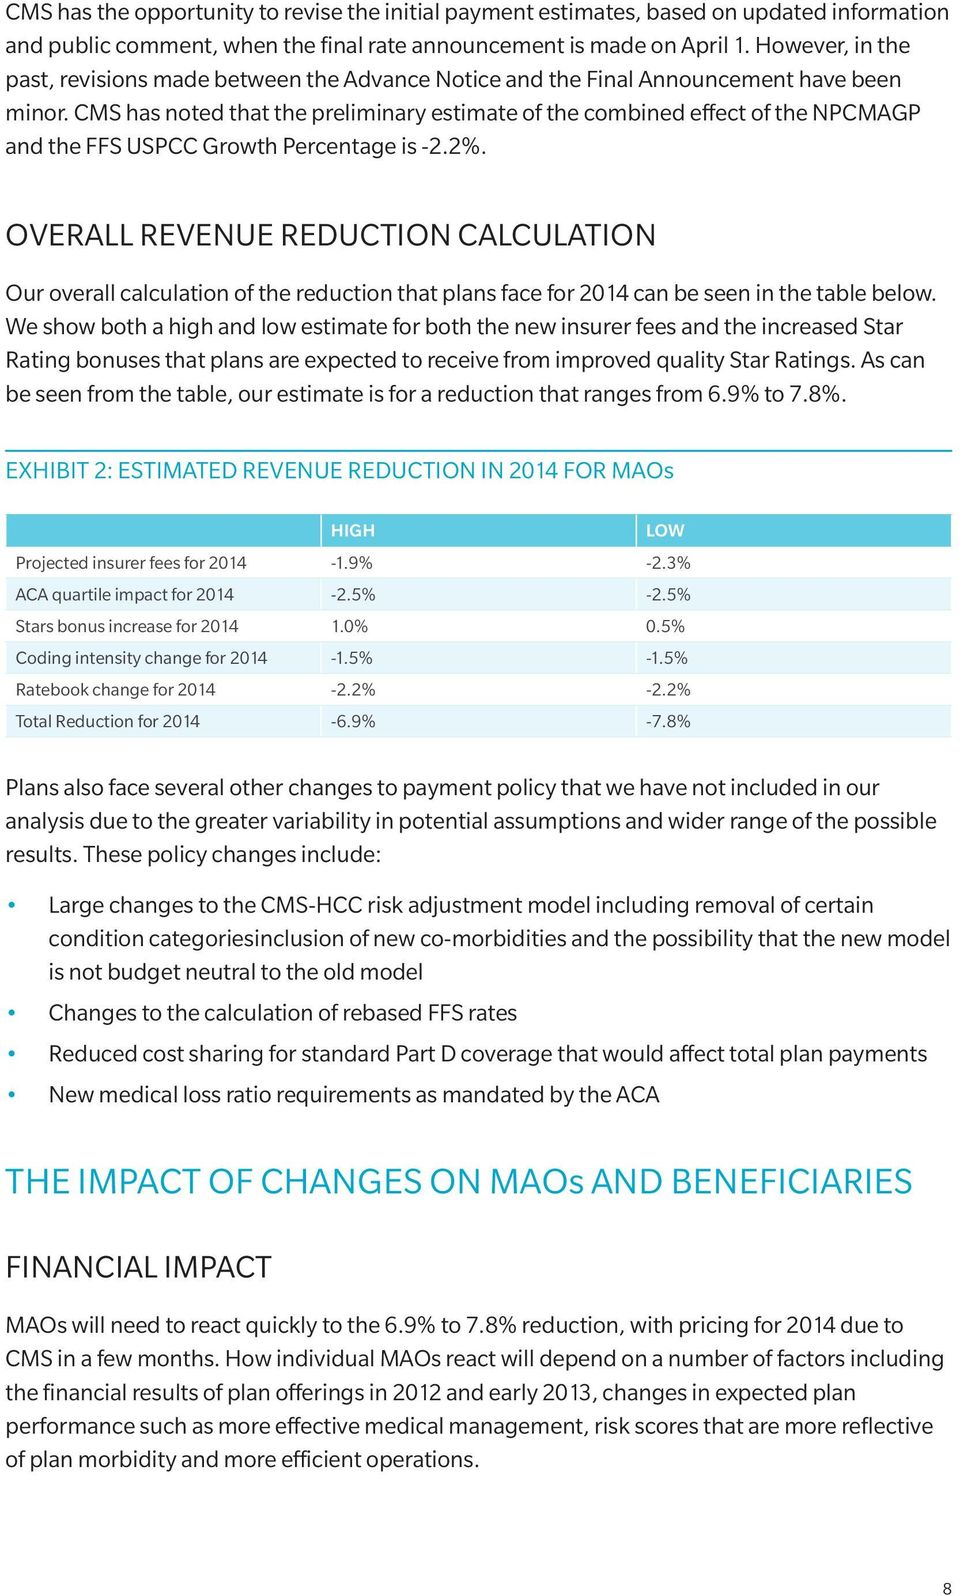 CMS has noted that the preliminary estimate of the combined effect of the NPCMAGP and the FFS USPCC Growth Percentage is -2.2%.